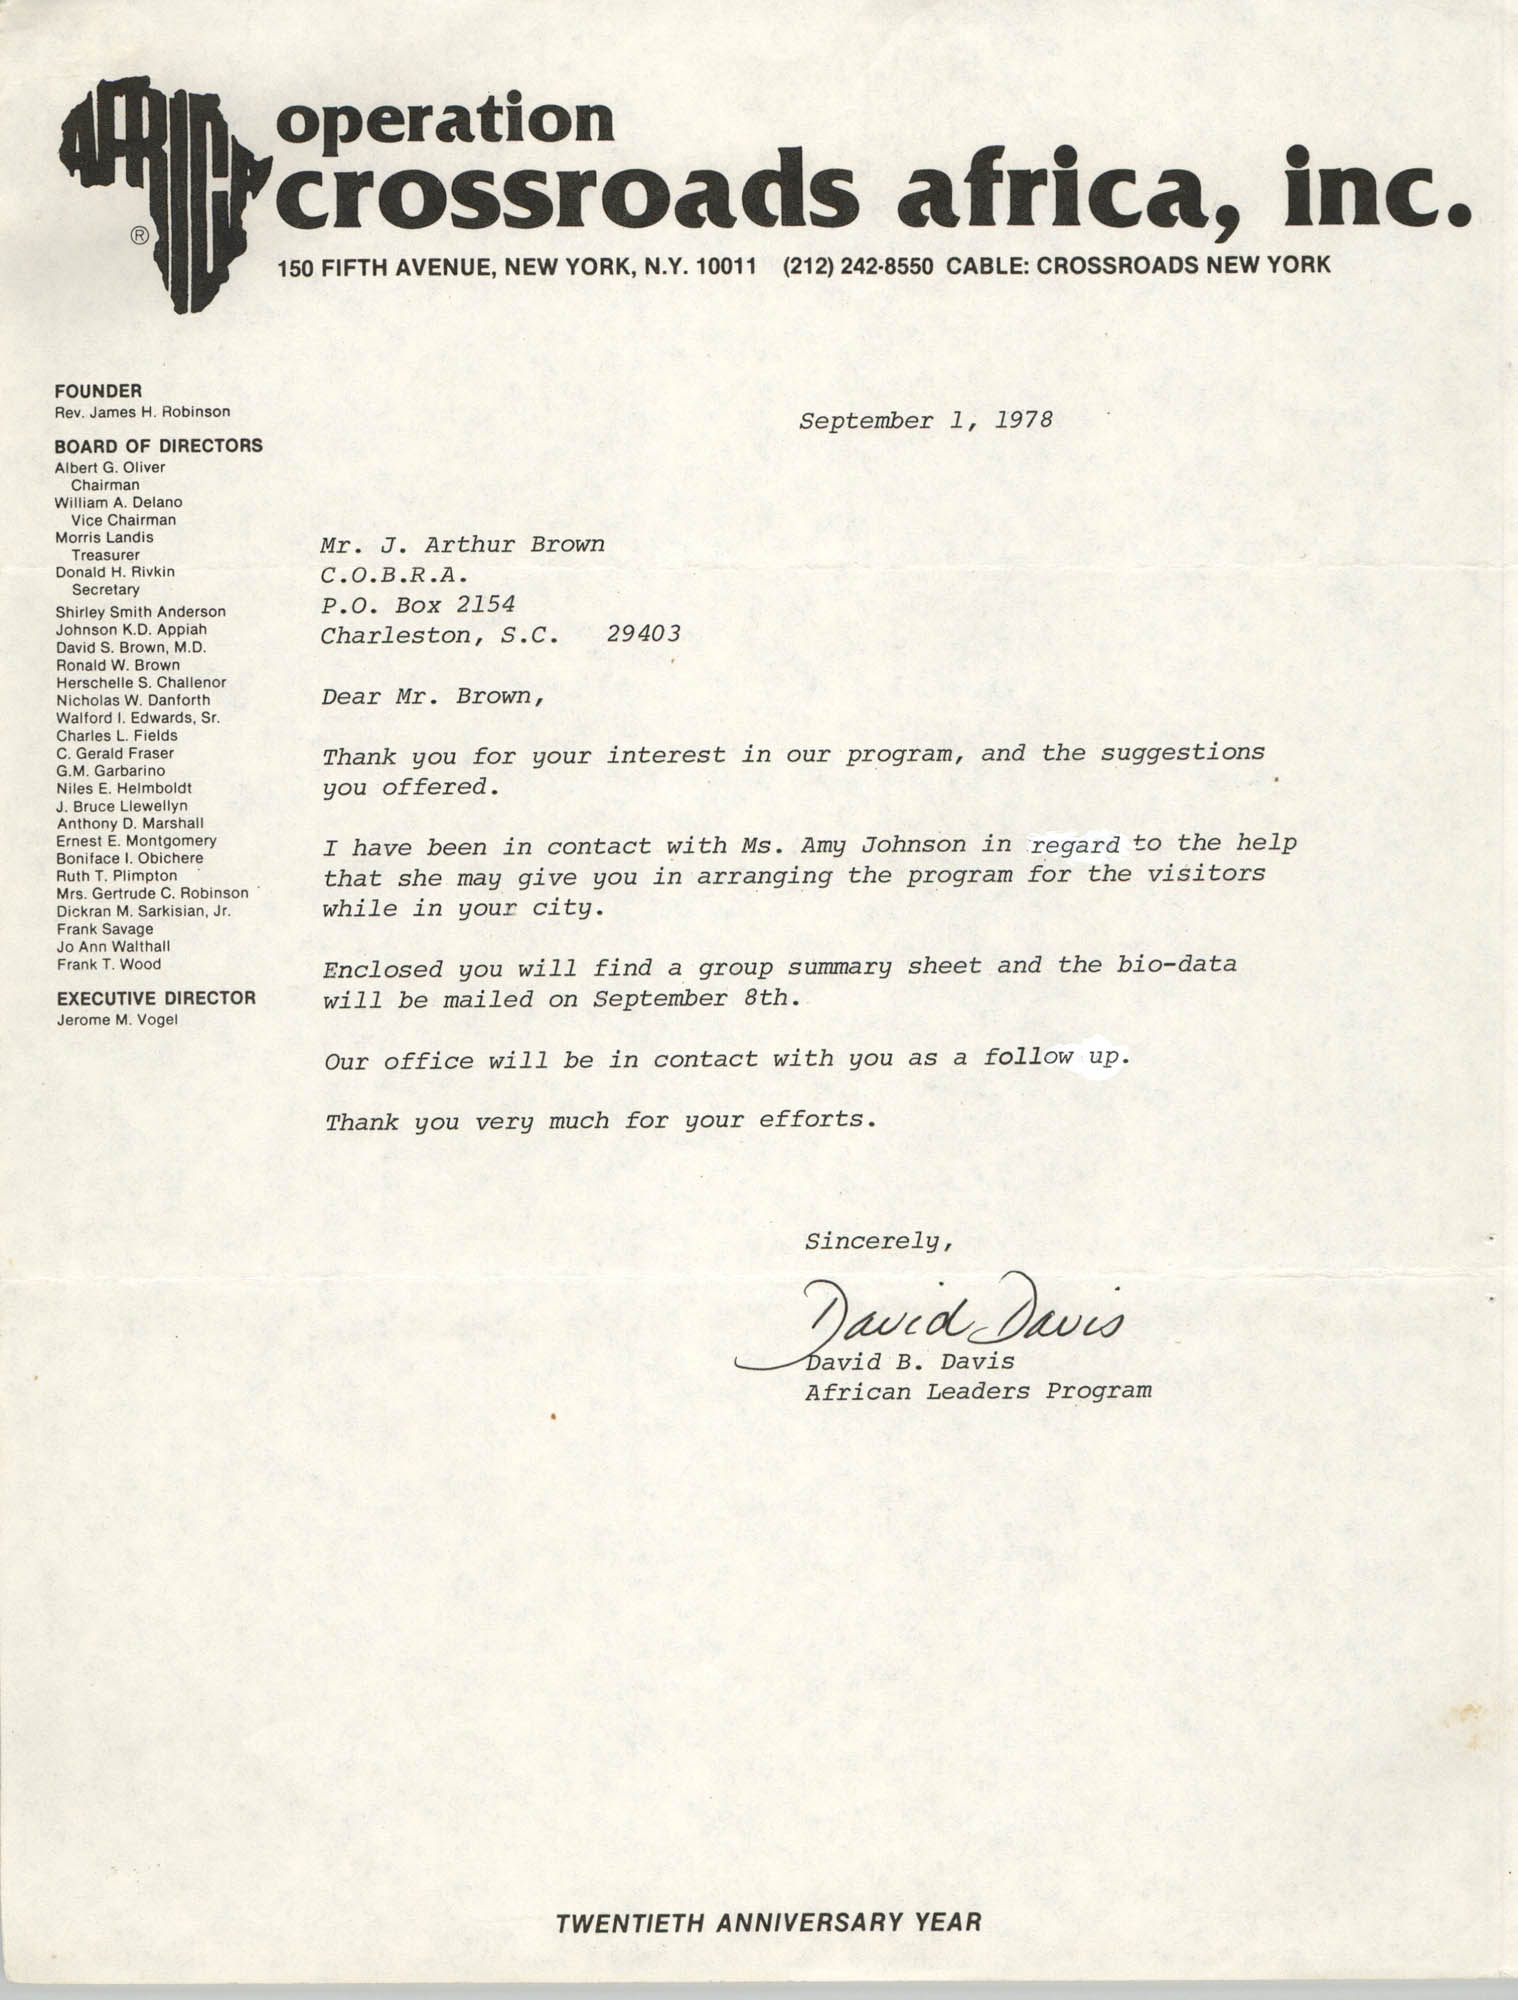 Letter from David B. Davis to J. Arthur Brown, September 1, 1978